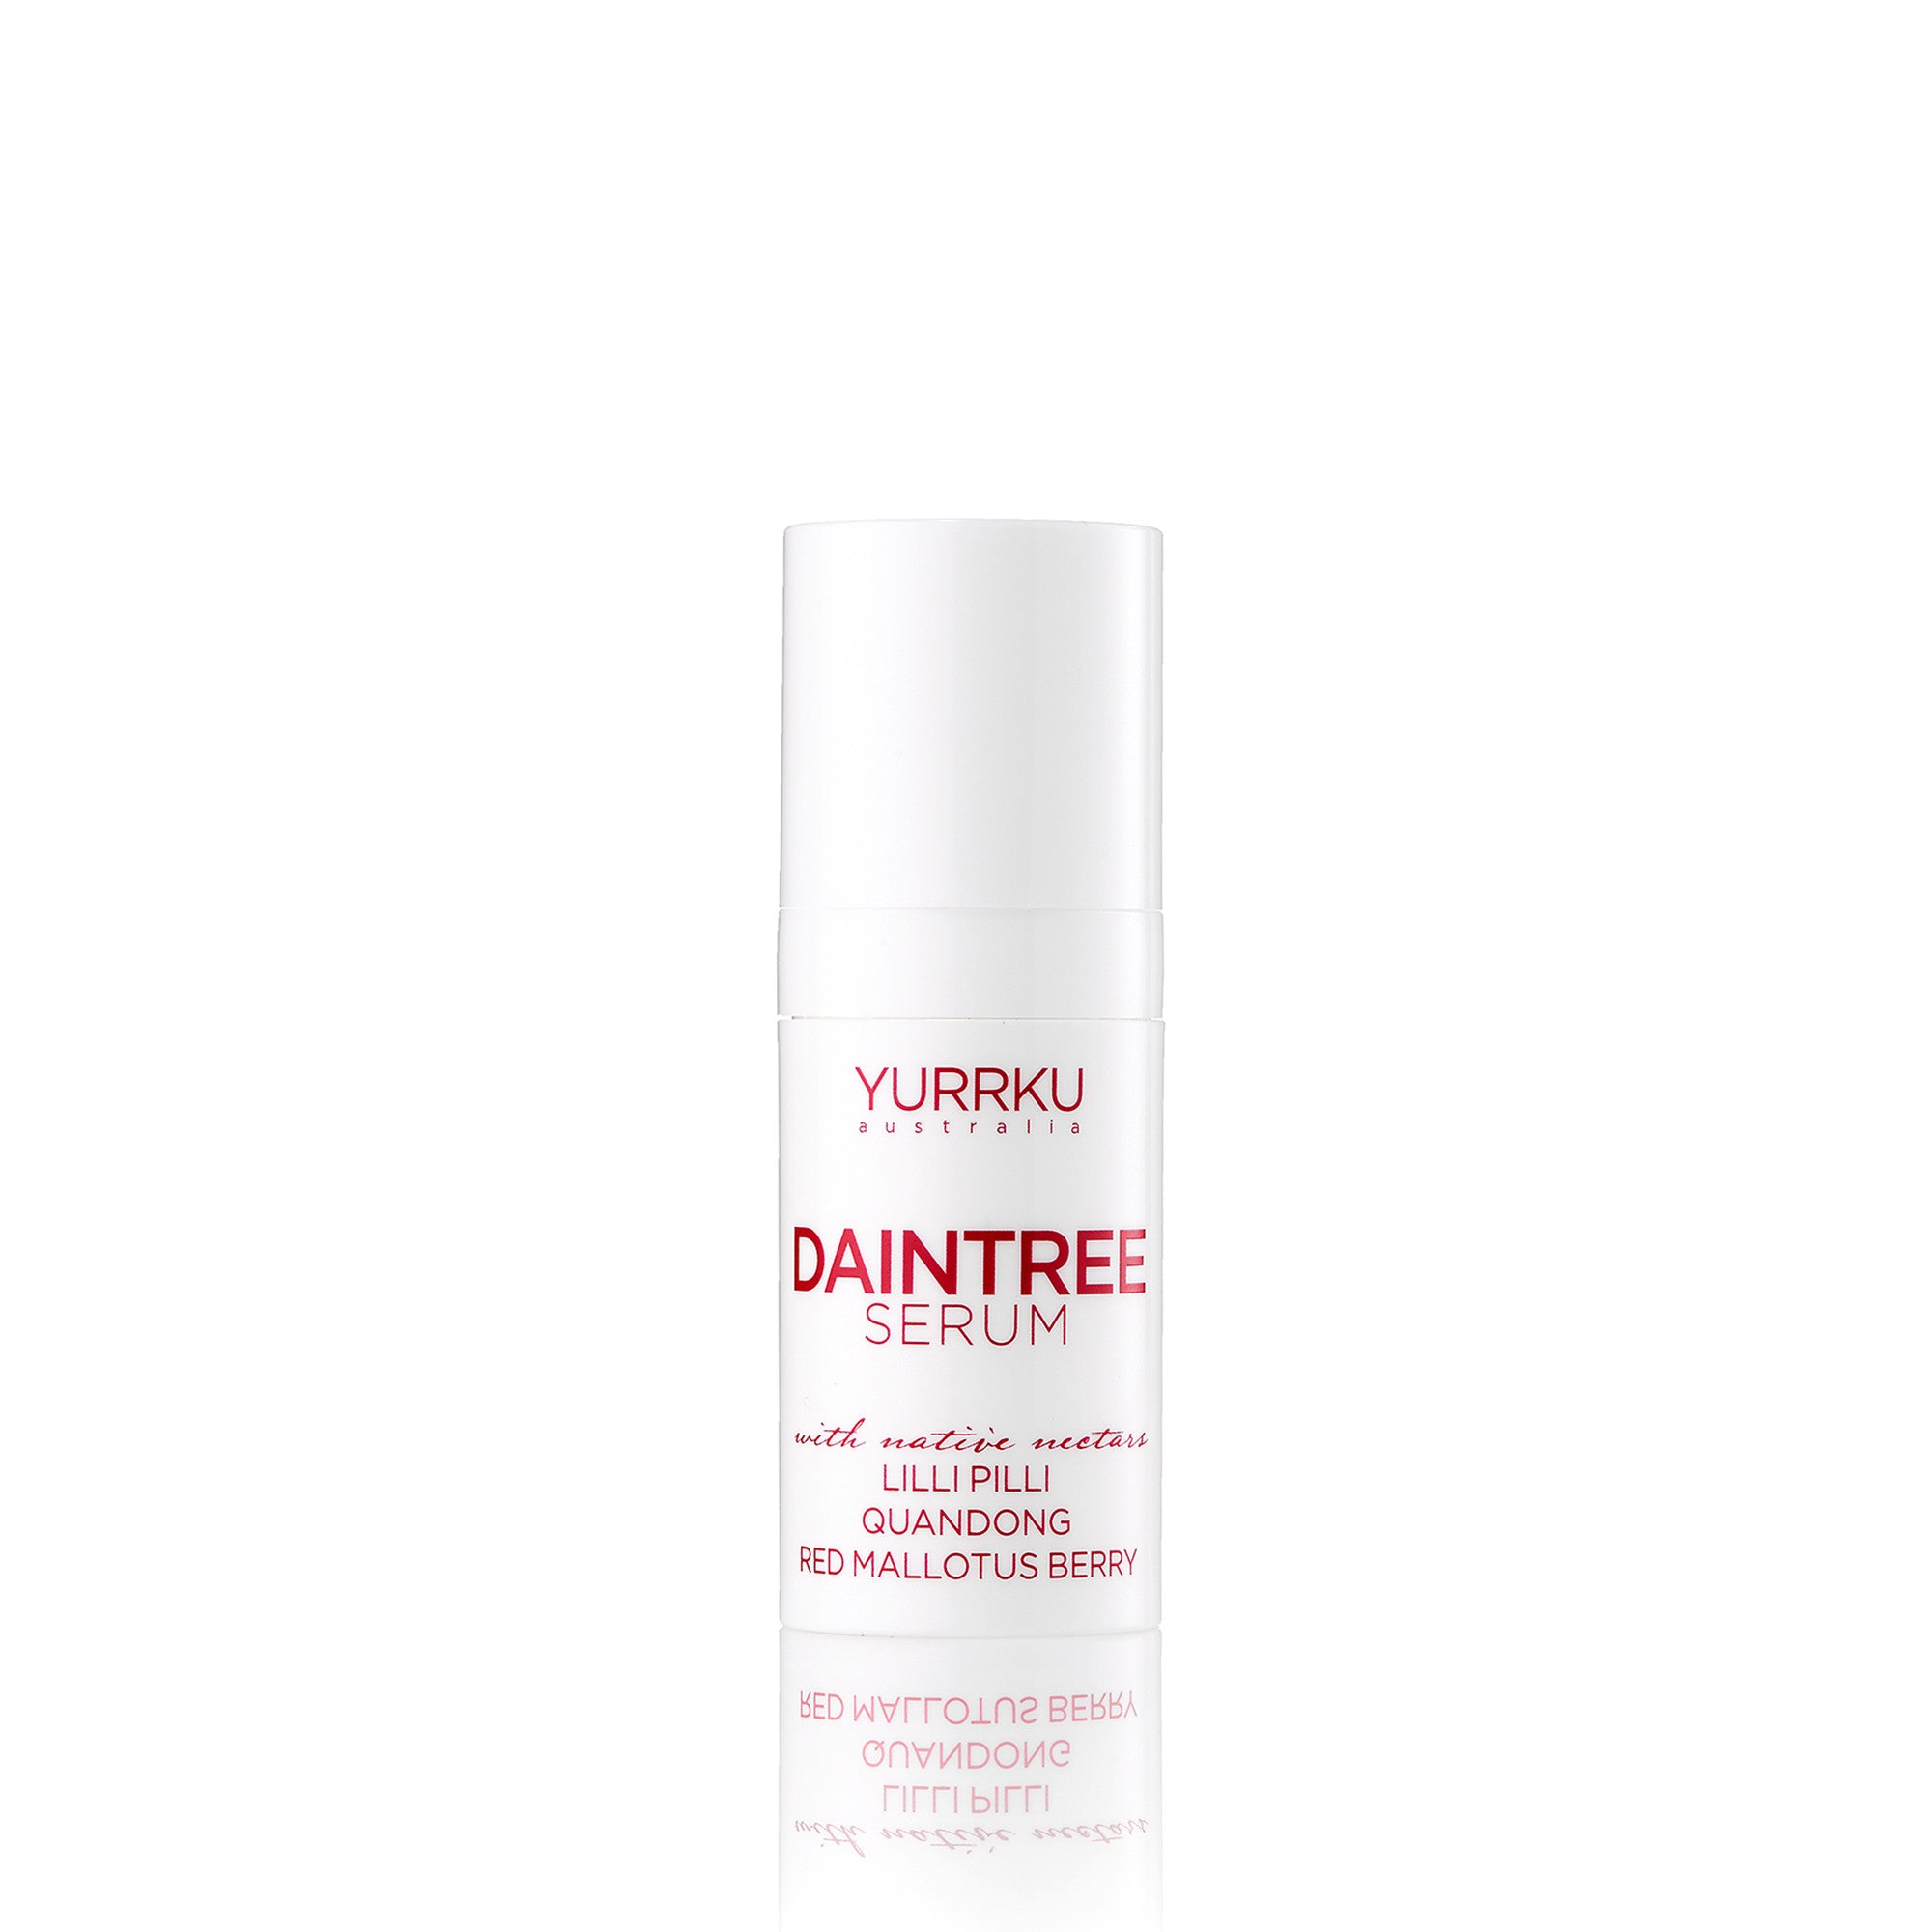 Yurrku - Daintree Serum 8ml